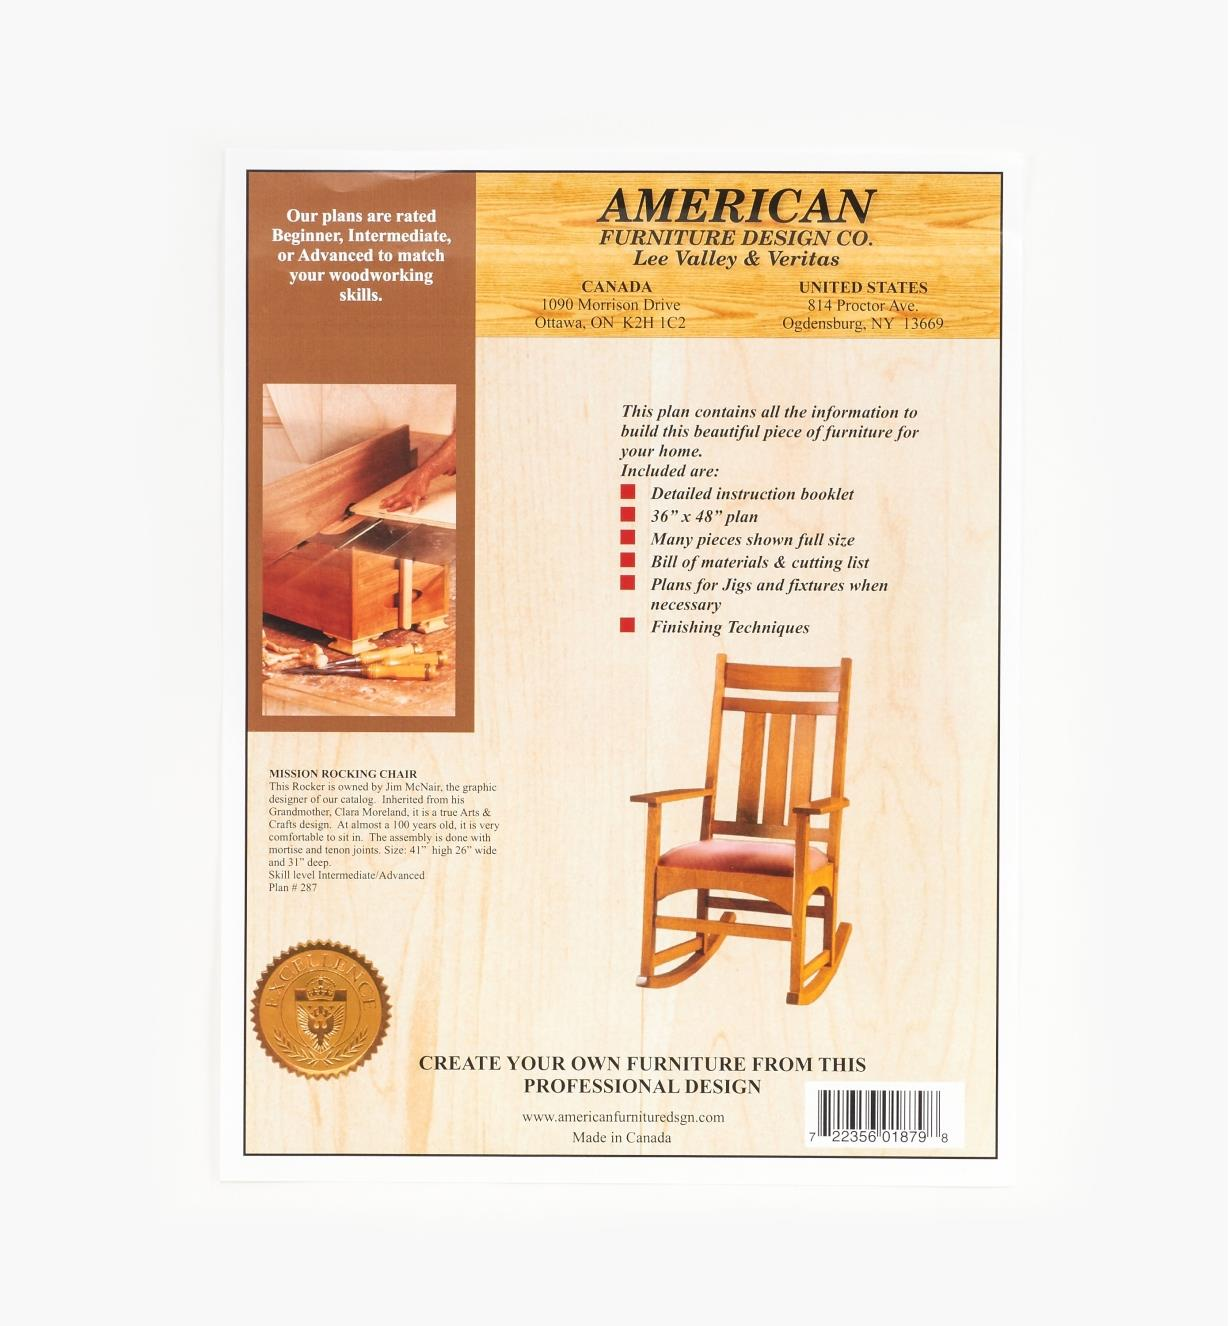 01L5007 - Mission Rocking Chair Plan